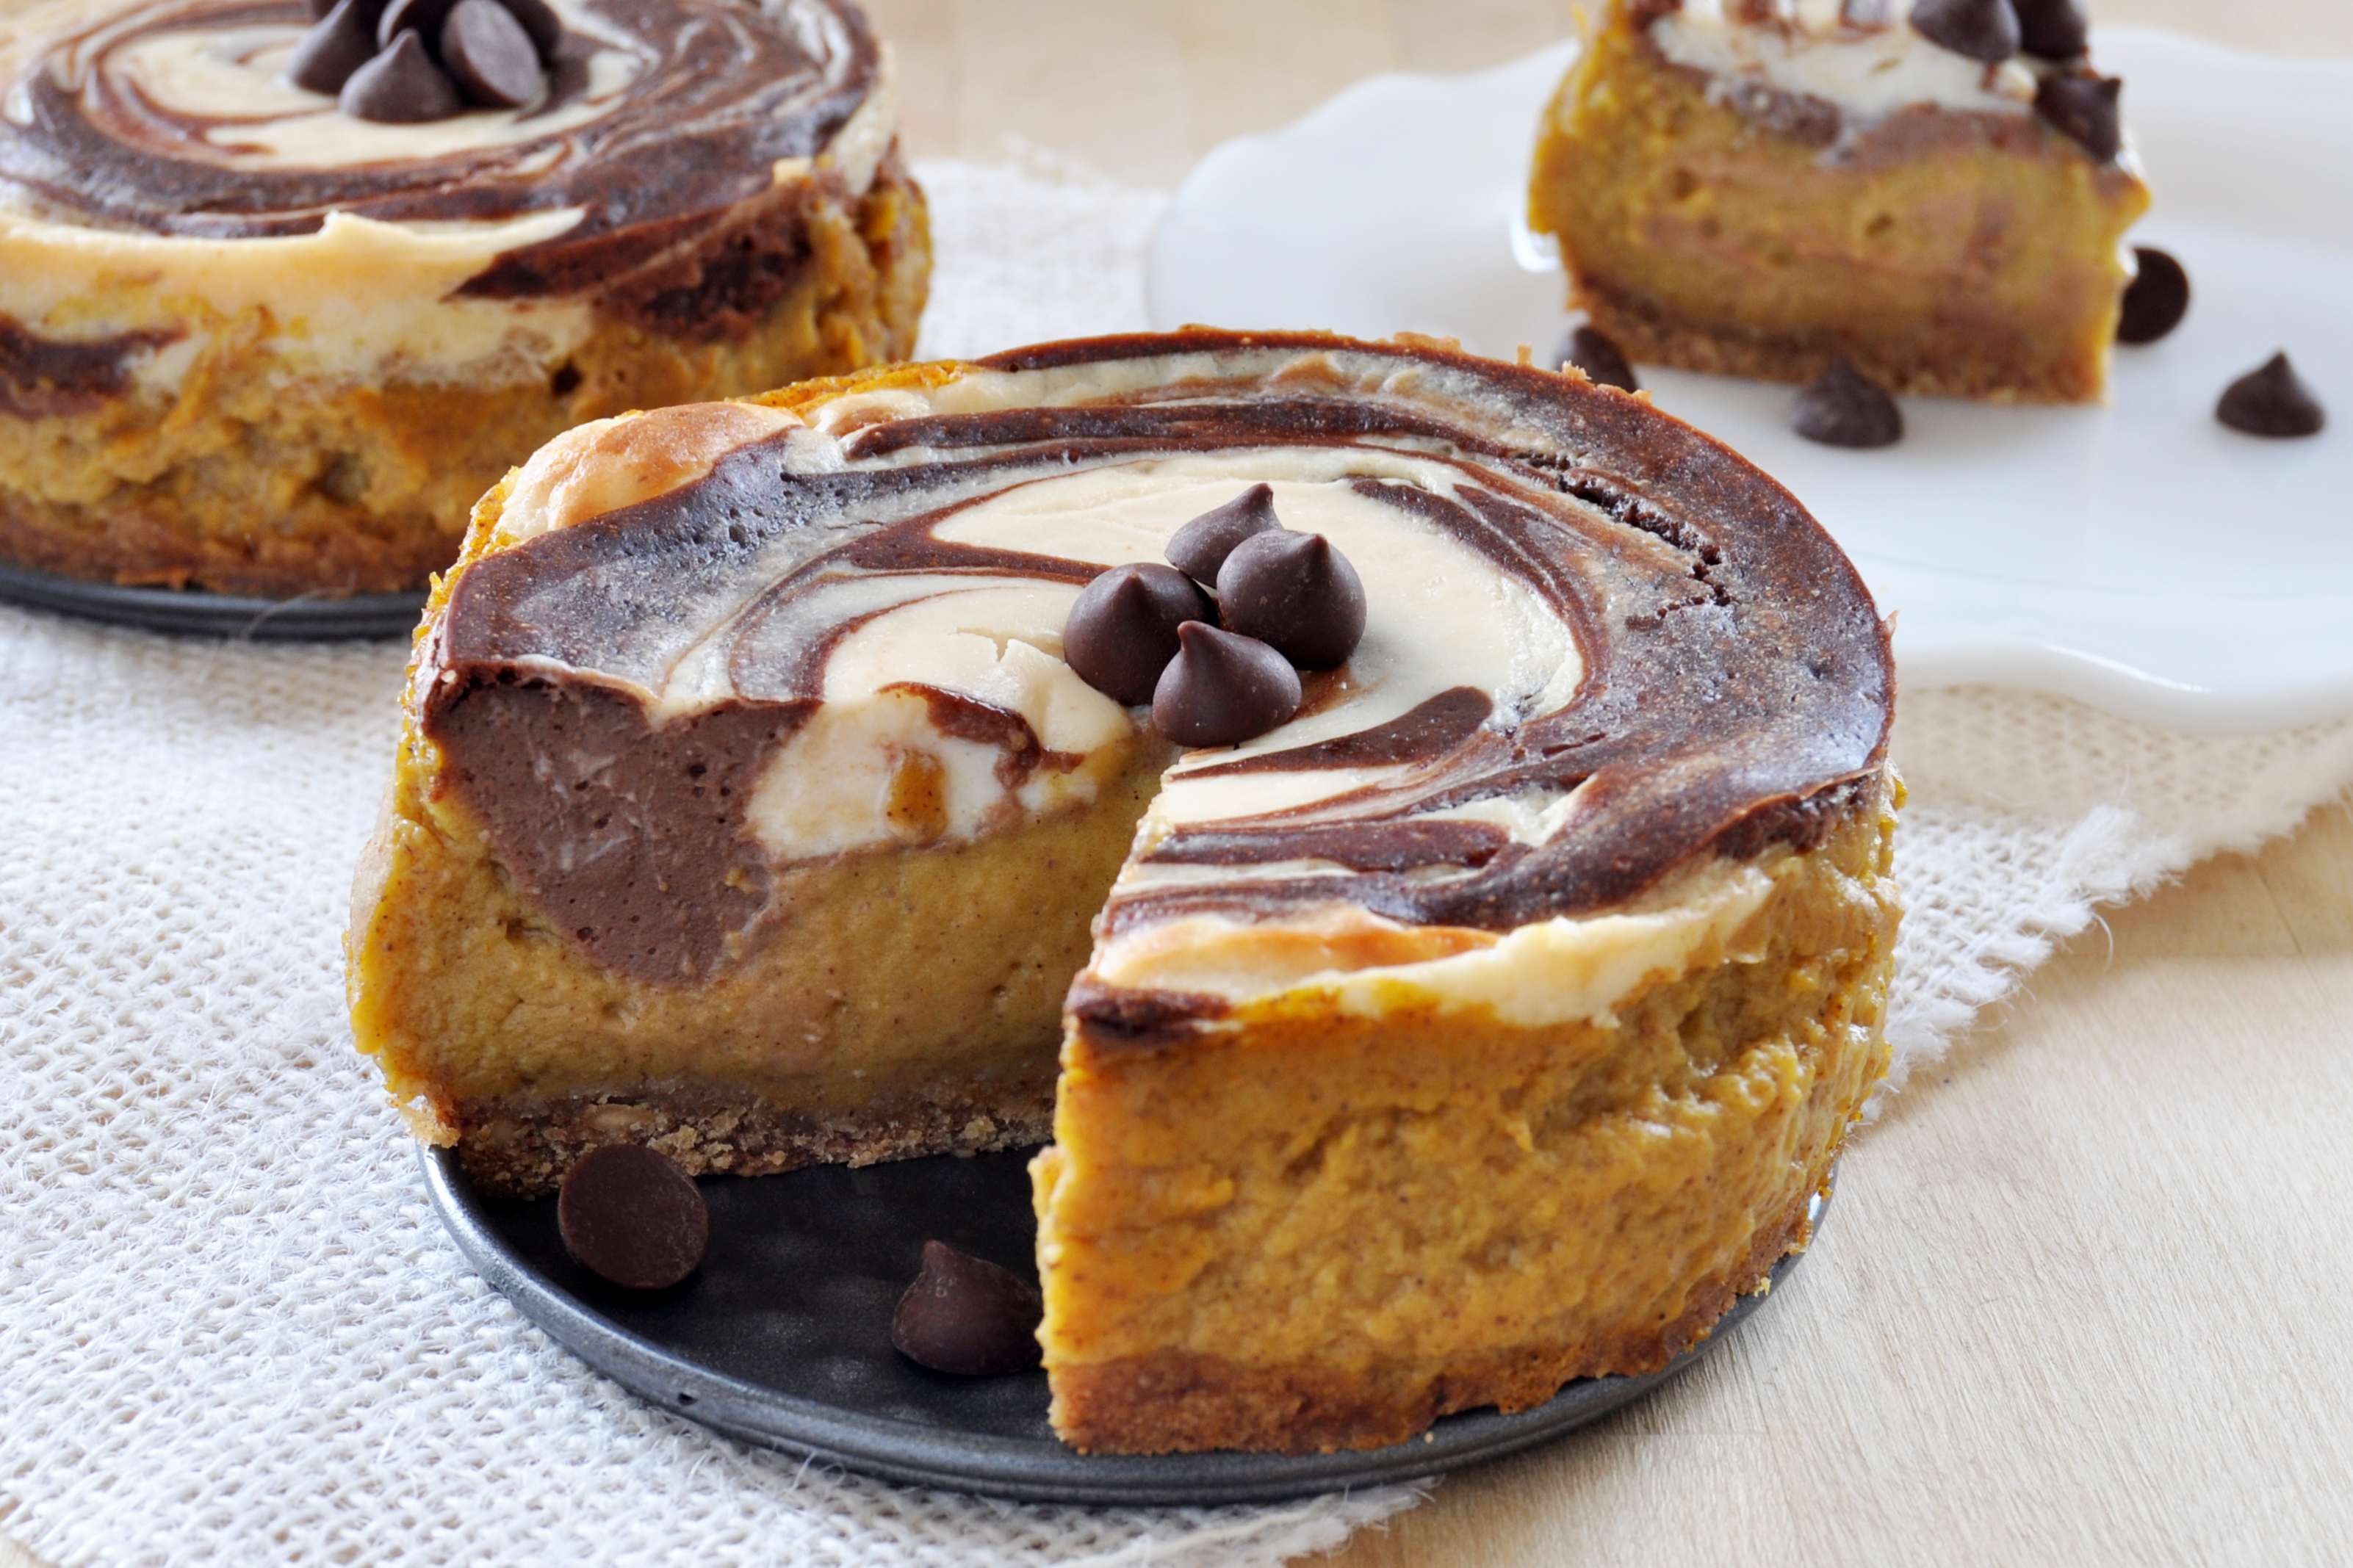 Chocolate+ Cheesecake Swirl Pumpkin Pie, Vegan+ Gluten-Free